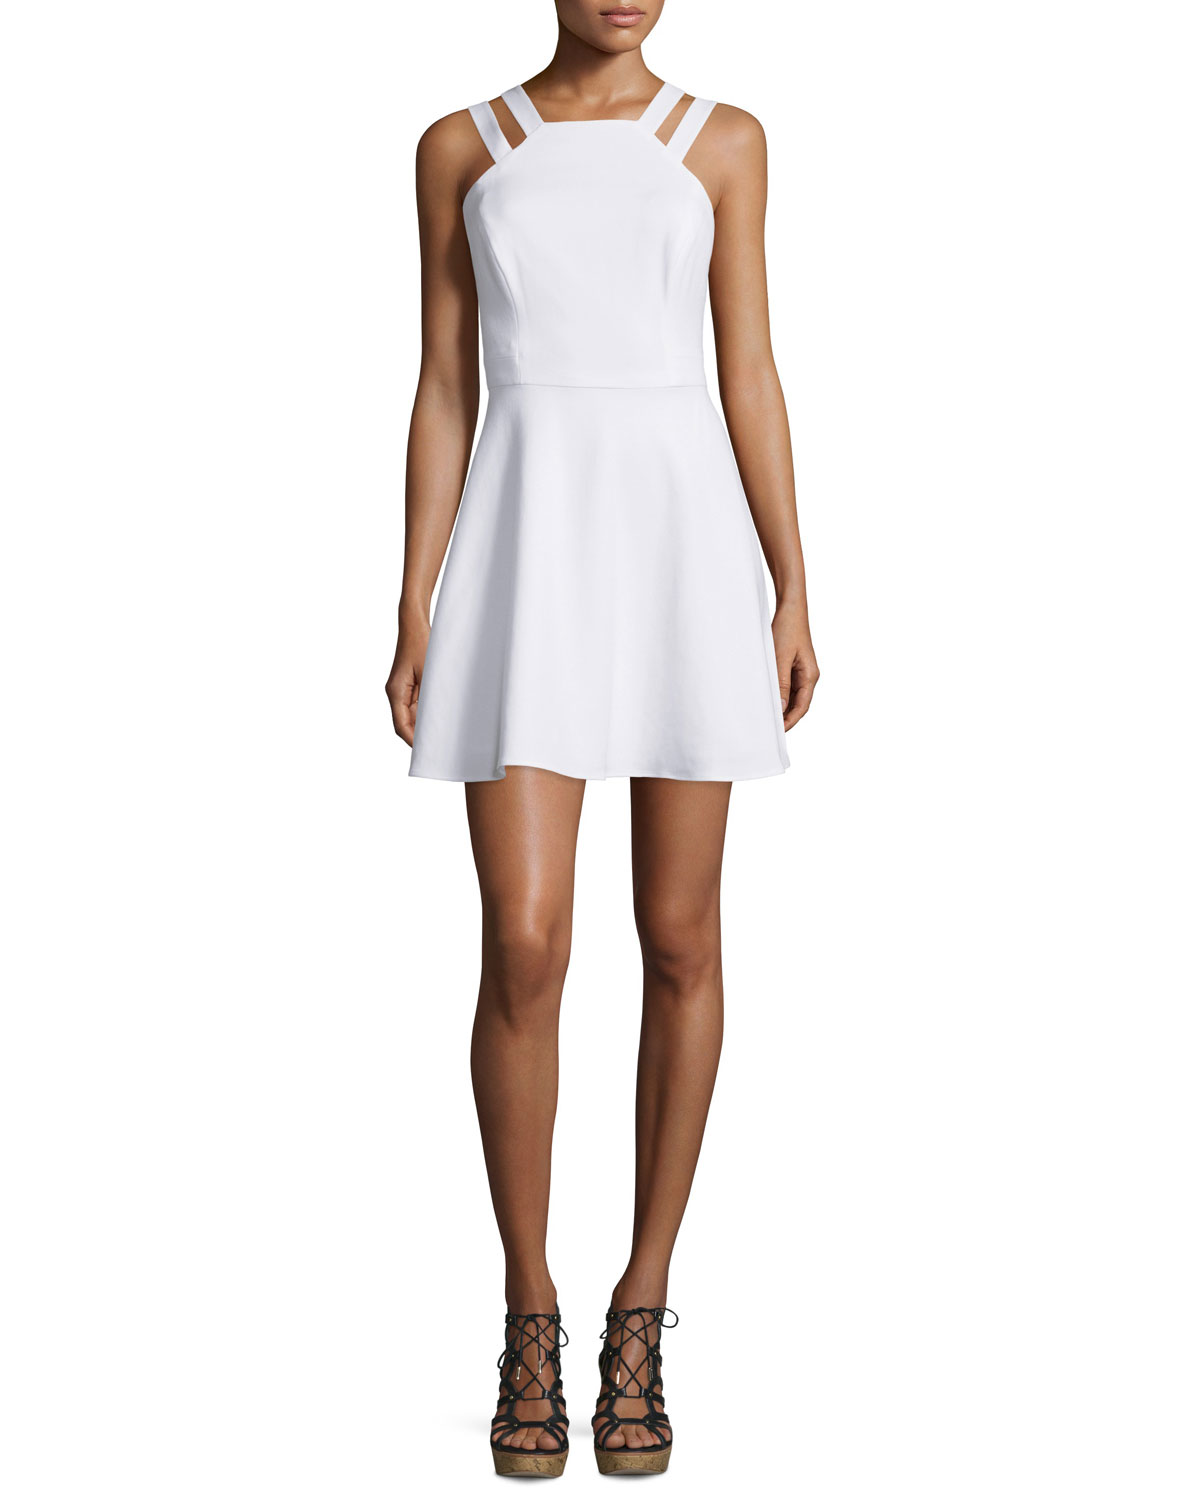 Whisper Light Sleeveless Dress, White